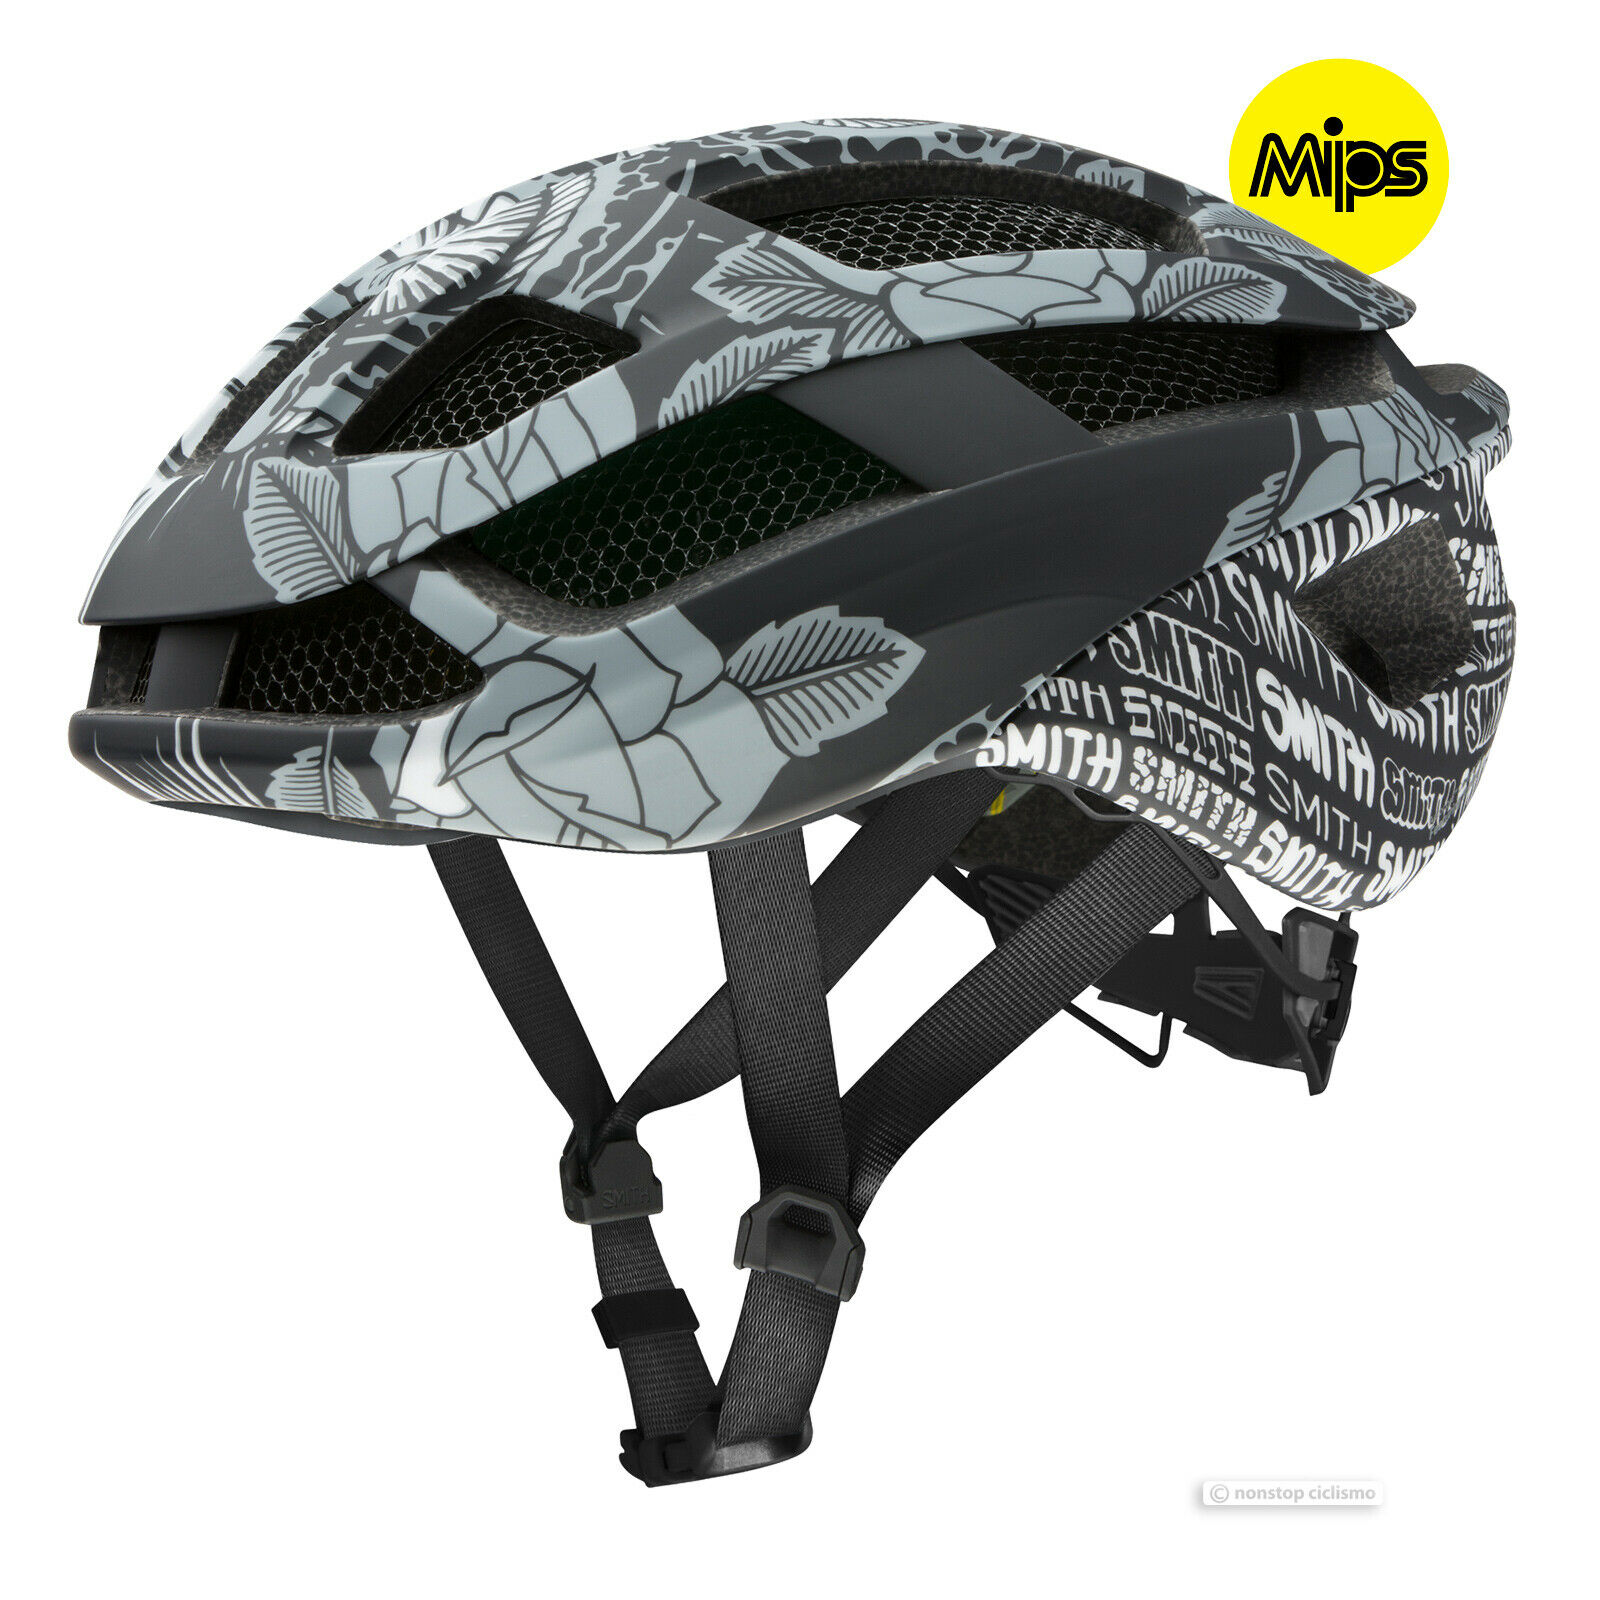 NEW 2019 Smith Optics TRACE MIPS Road Cycling Helmet   MIKE GIANT